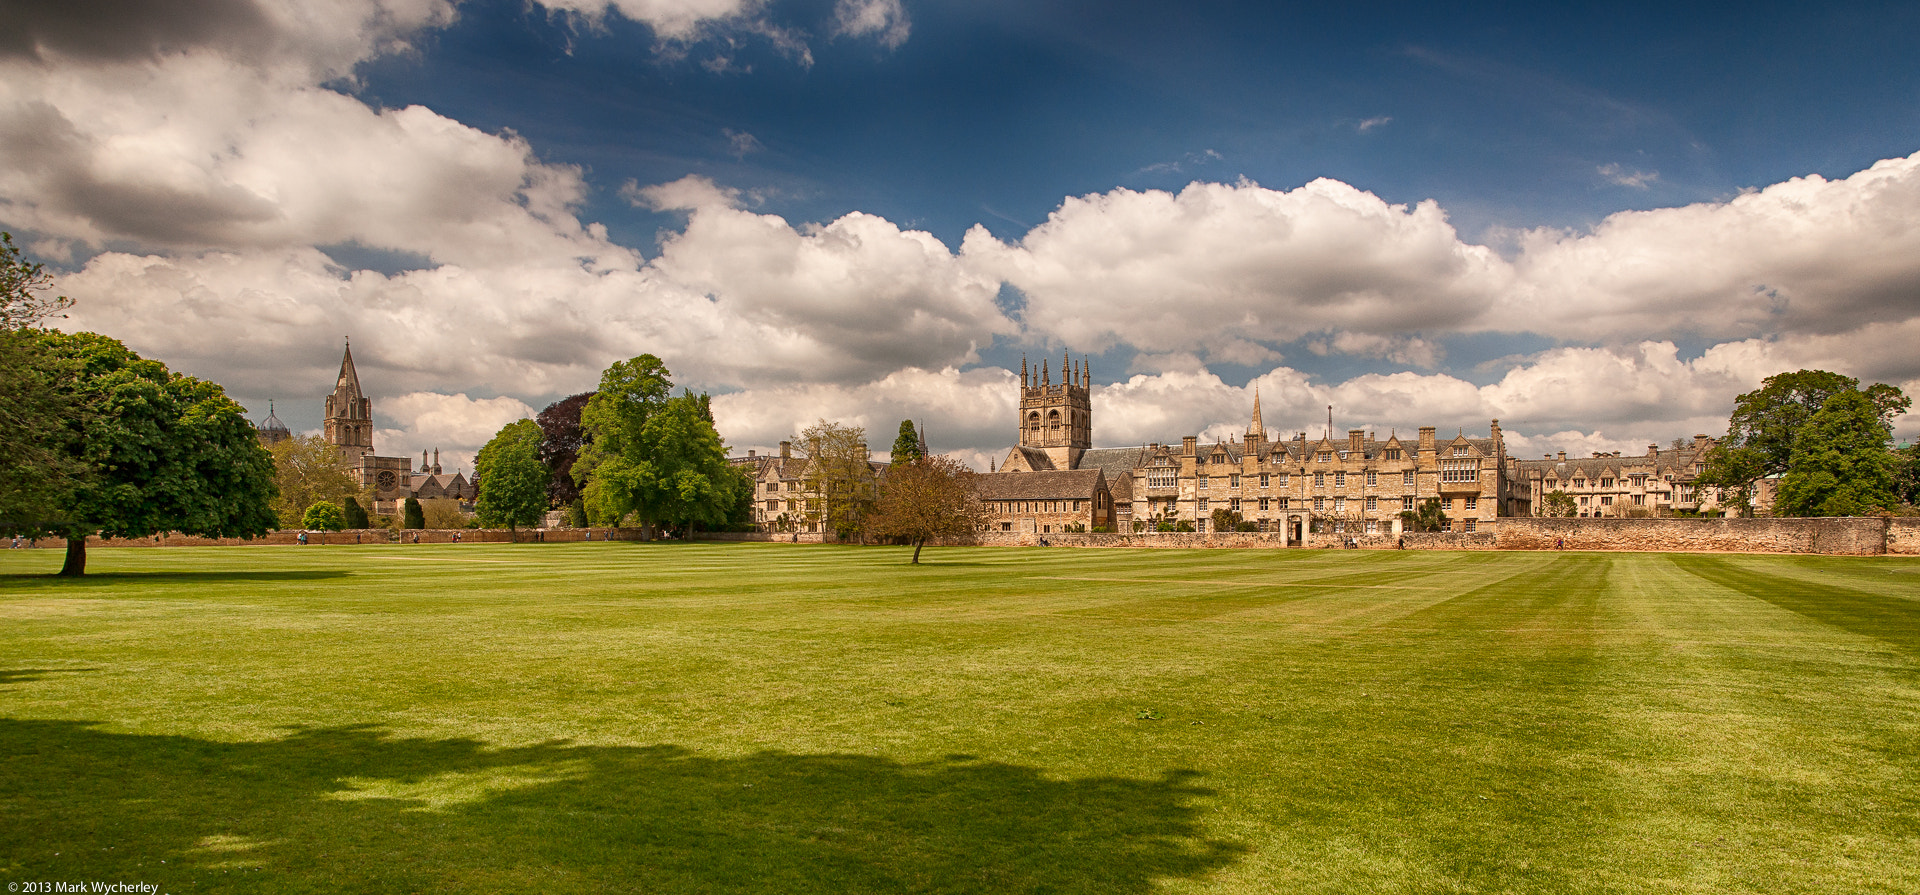 Photograph Oxford by Mark Wycherley on 500px